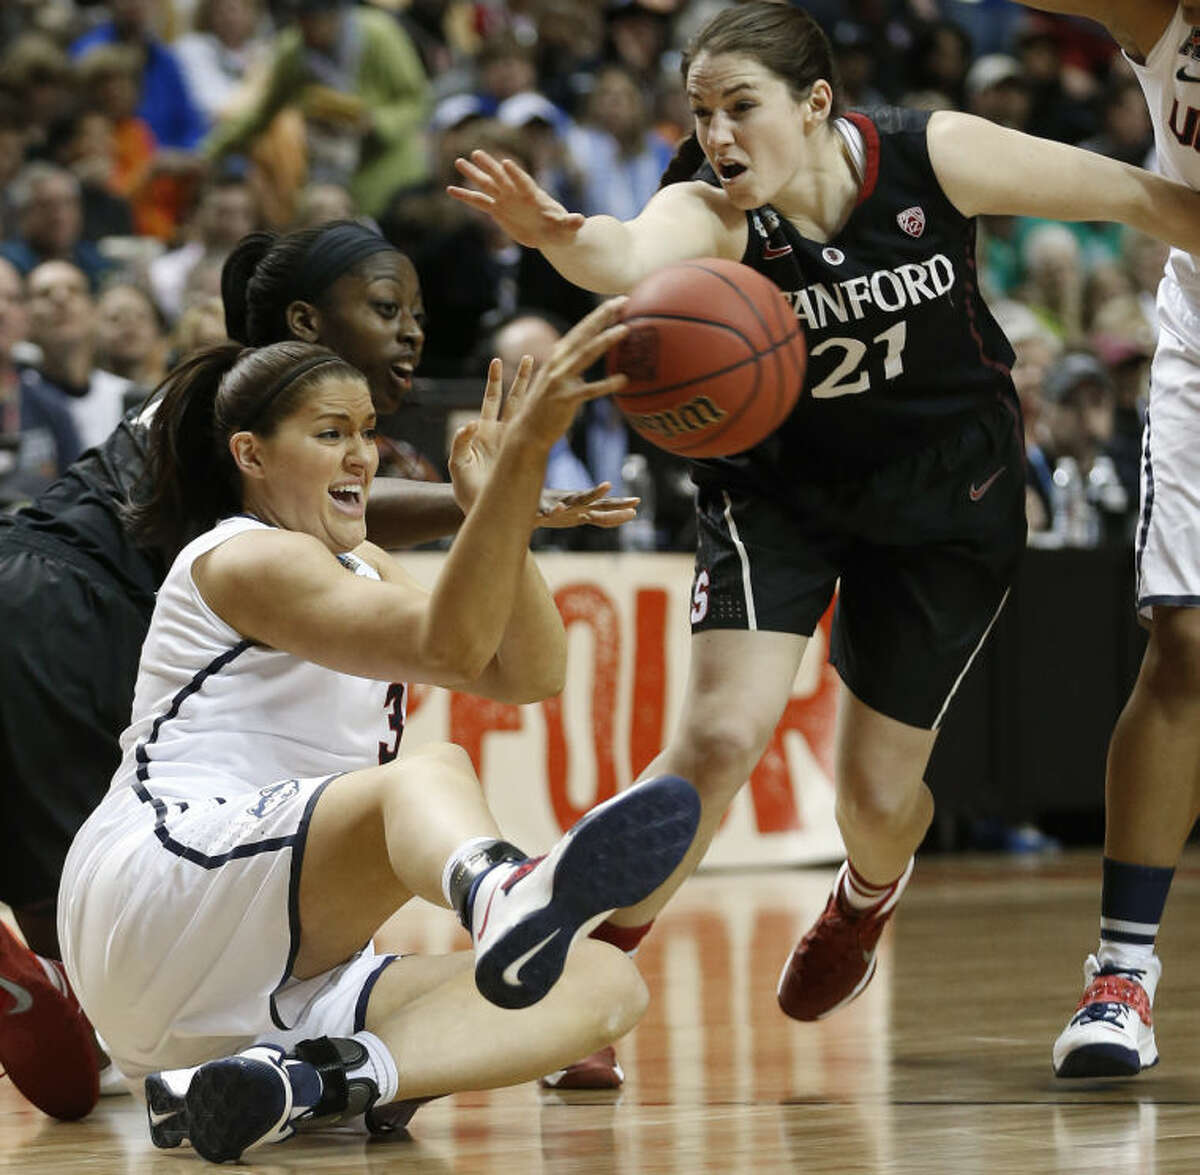 Connecticut center Stefanie Dolson (31) passes the ball against Stanford guard Sara James (21) during the first half of the semifinal game in the Final Four of the NCAA women's college basketball tournament, Sunday, April 6, 2014, in Nashville, Tenn. (AP Photo/John Bazemore)